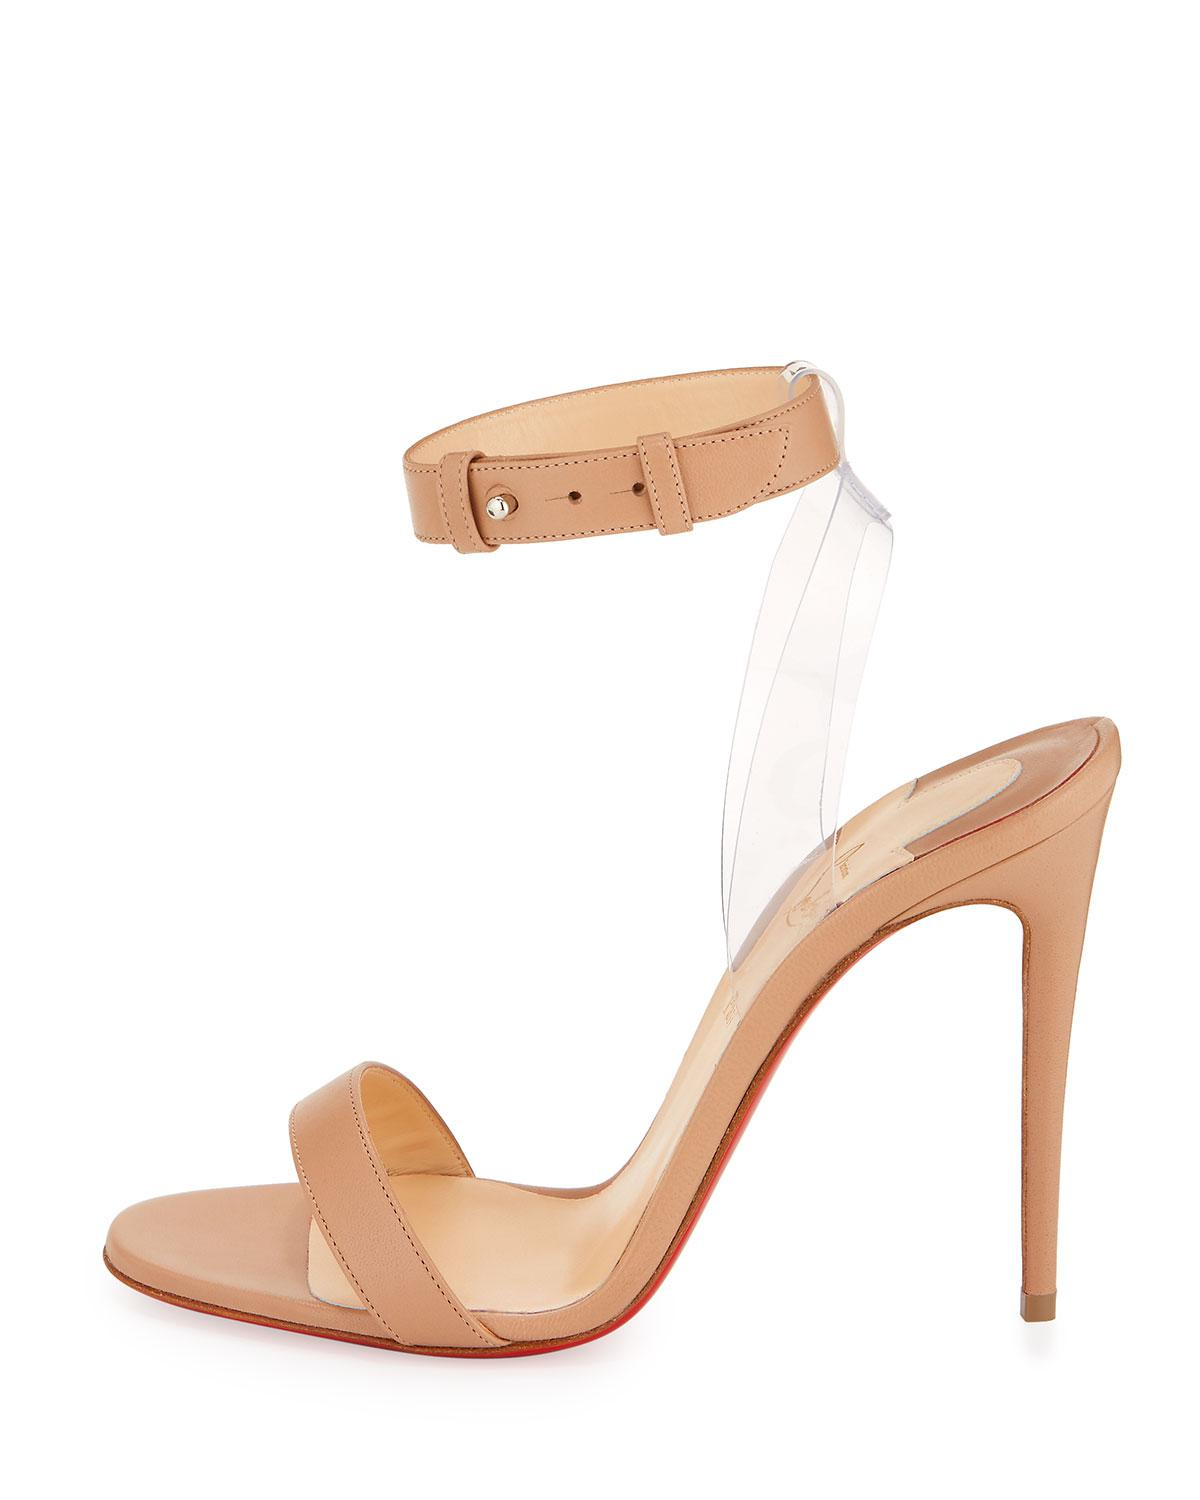 d0ecb9a6f67 Lyst - Christian Louboutin Jonatina Illusion Red Sole Sandal in Natural